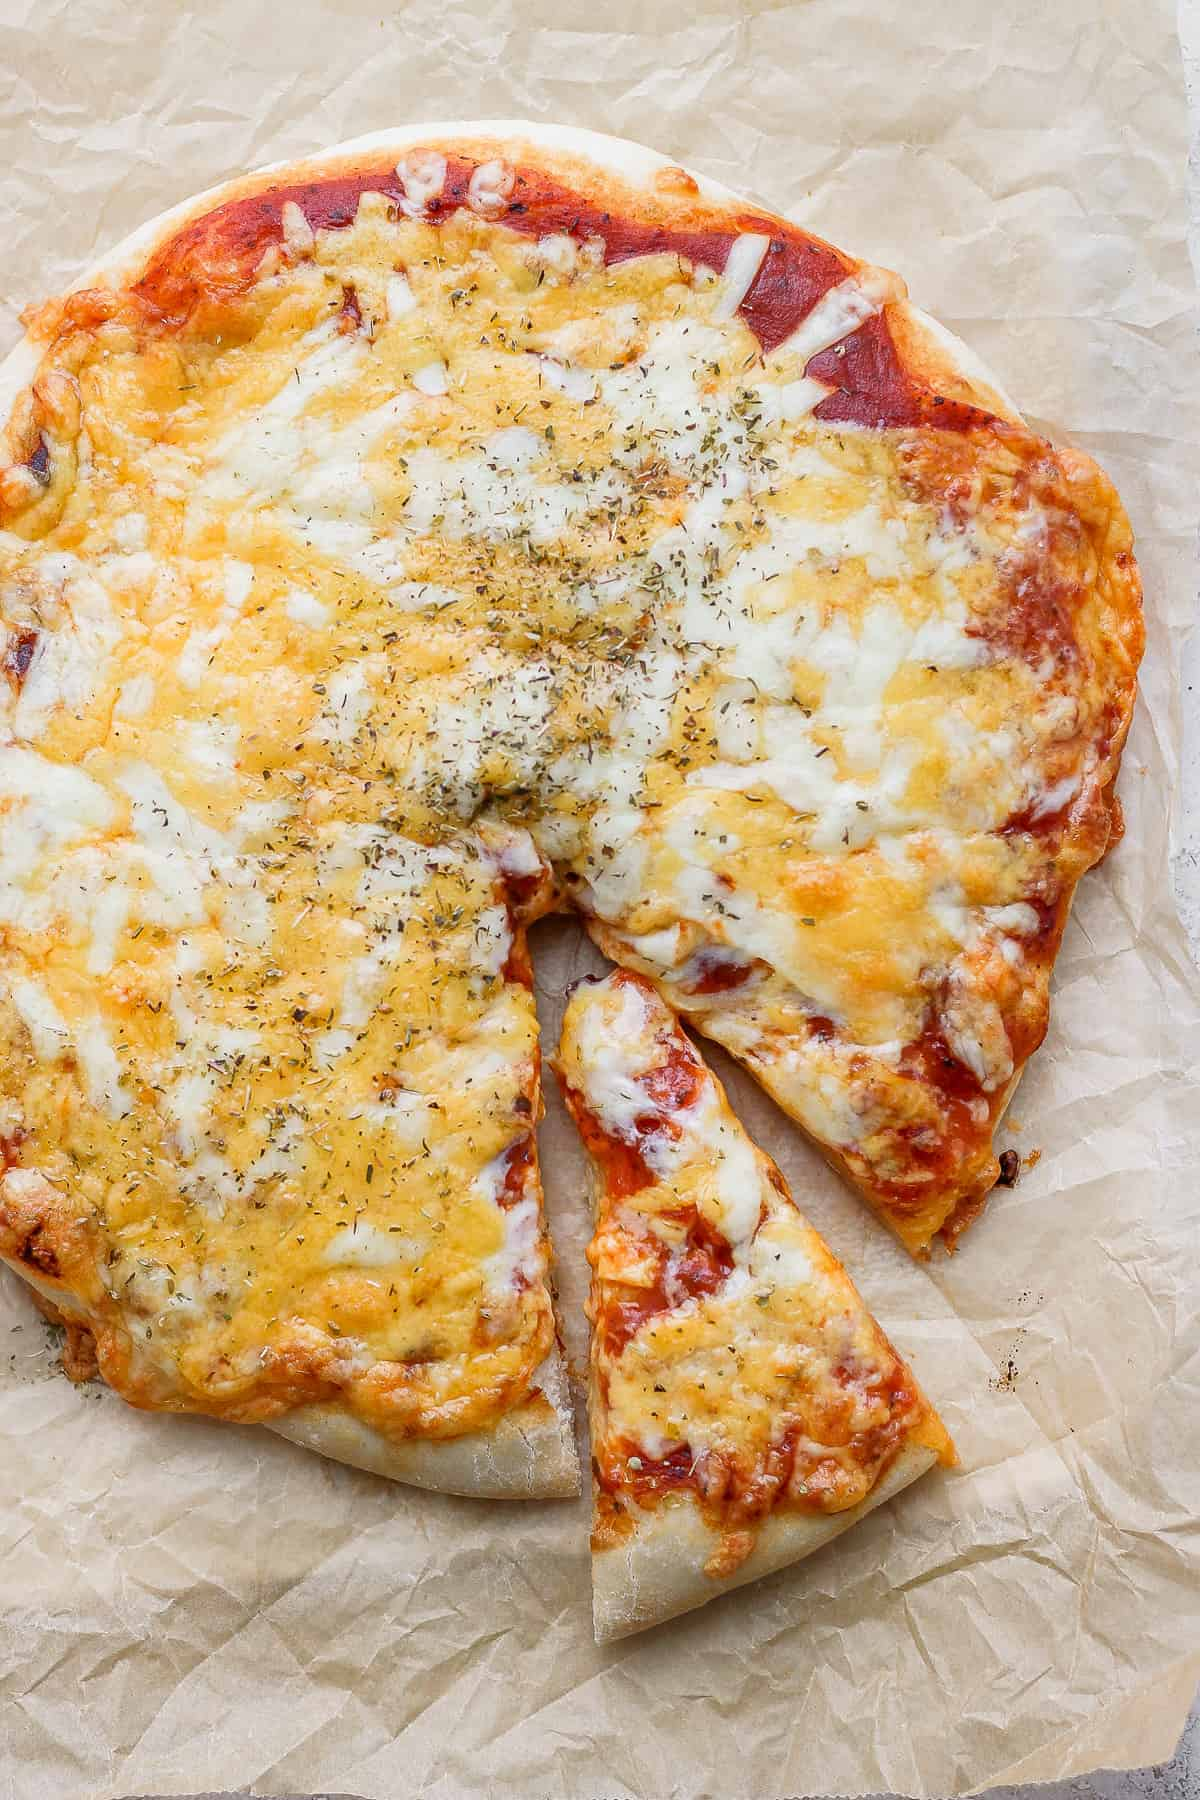 Slice of pizza cut out